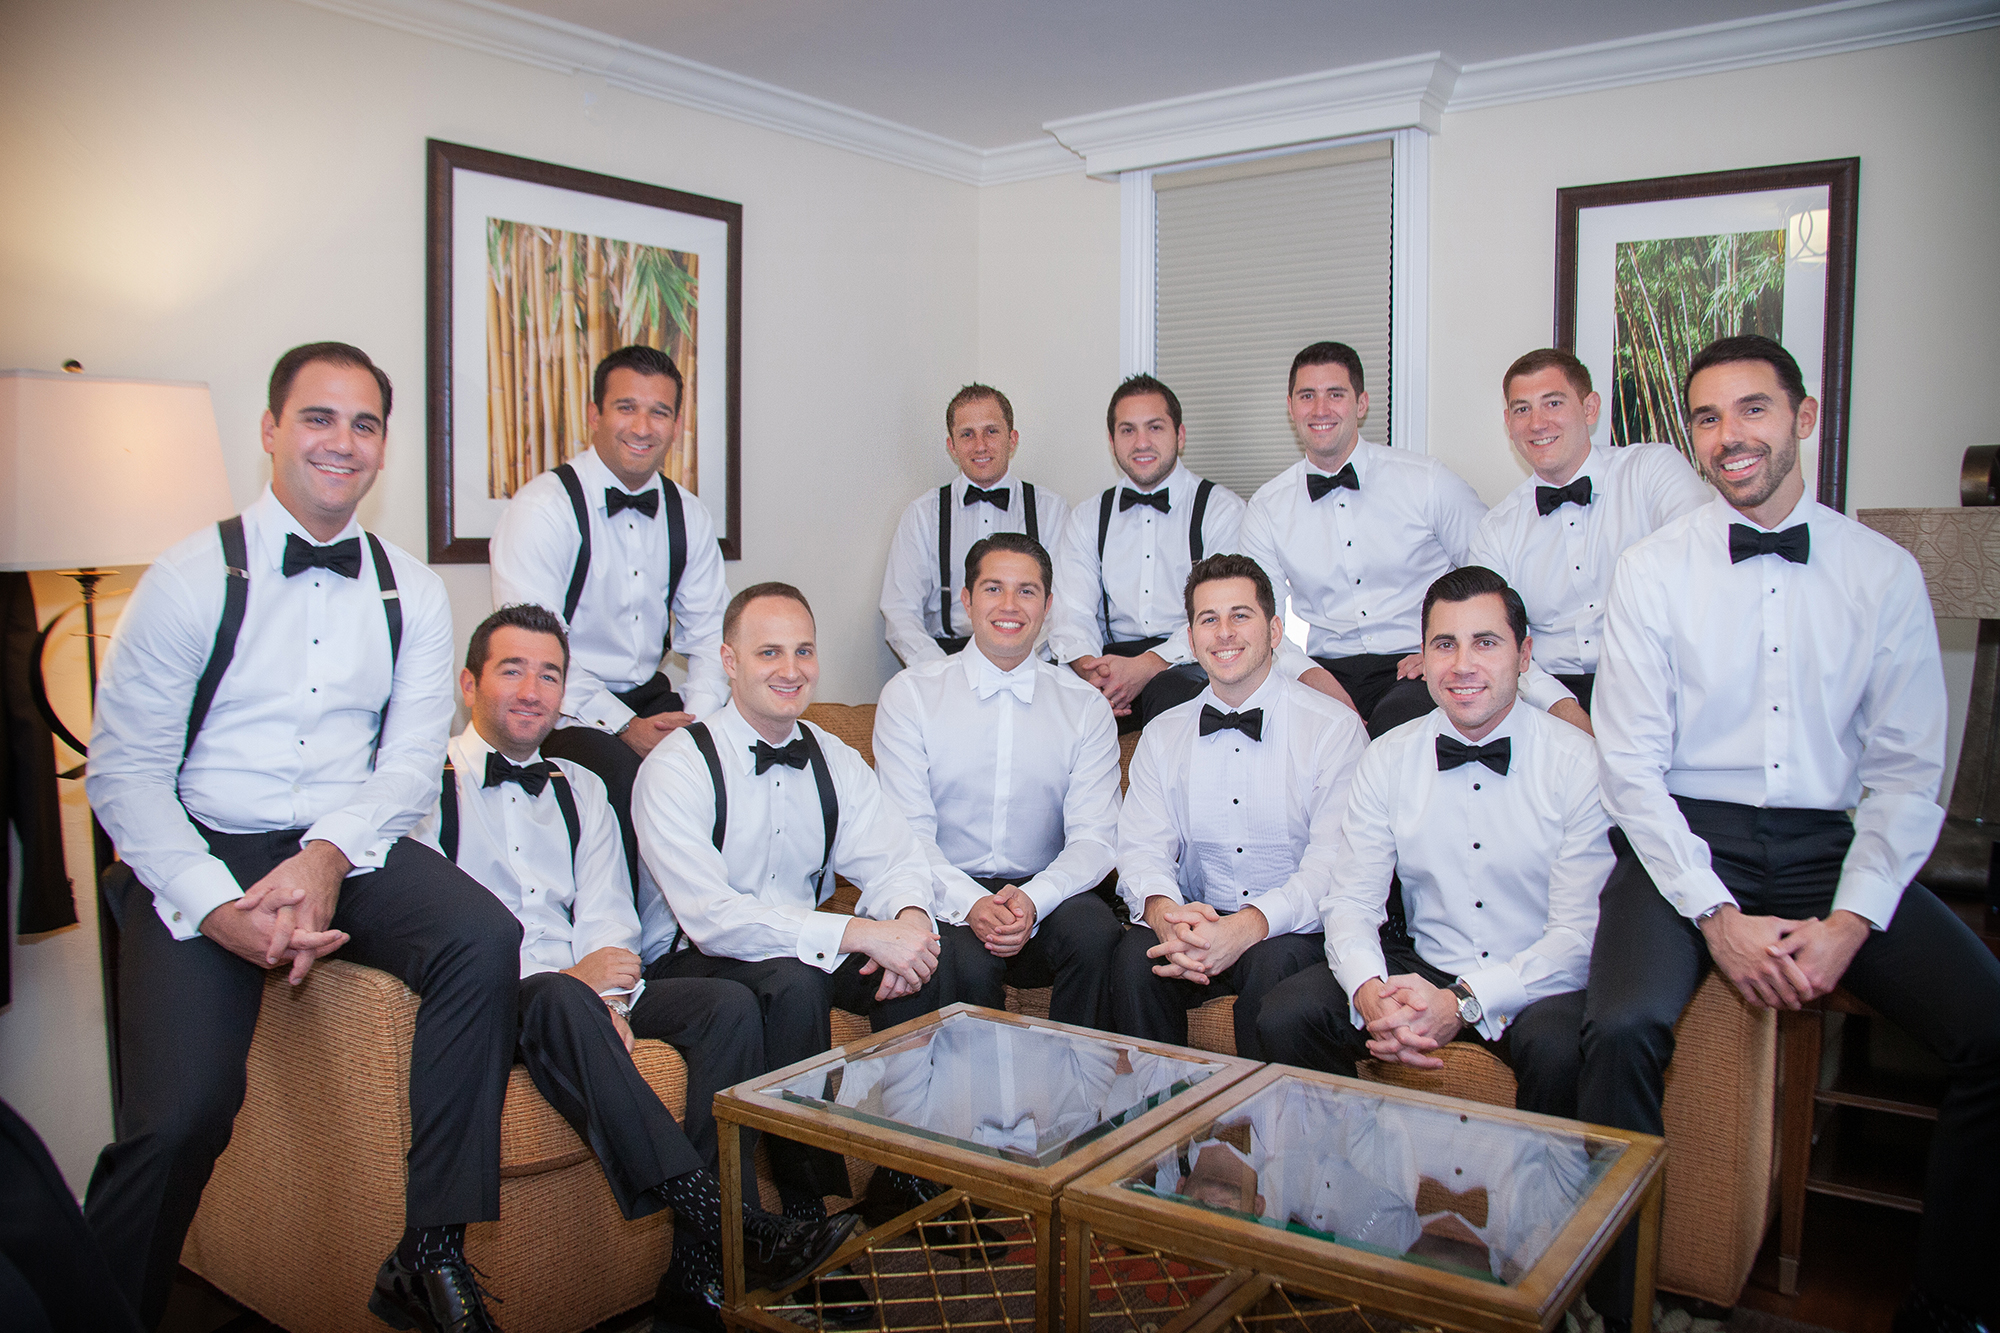 boca-raton-jewish-wedding-jeff-kolodny-photos-25